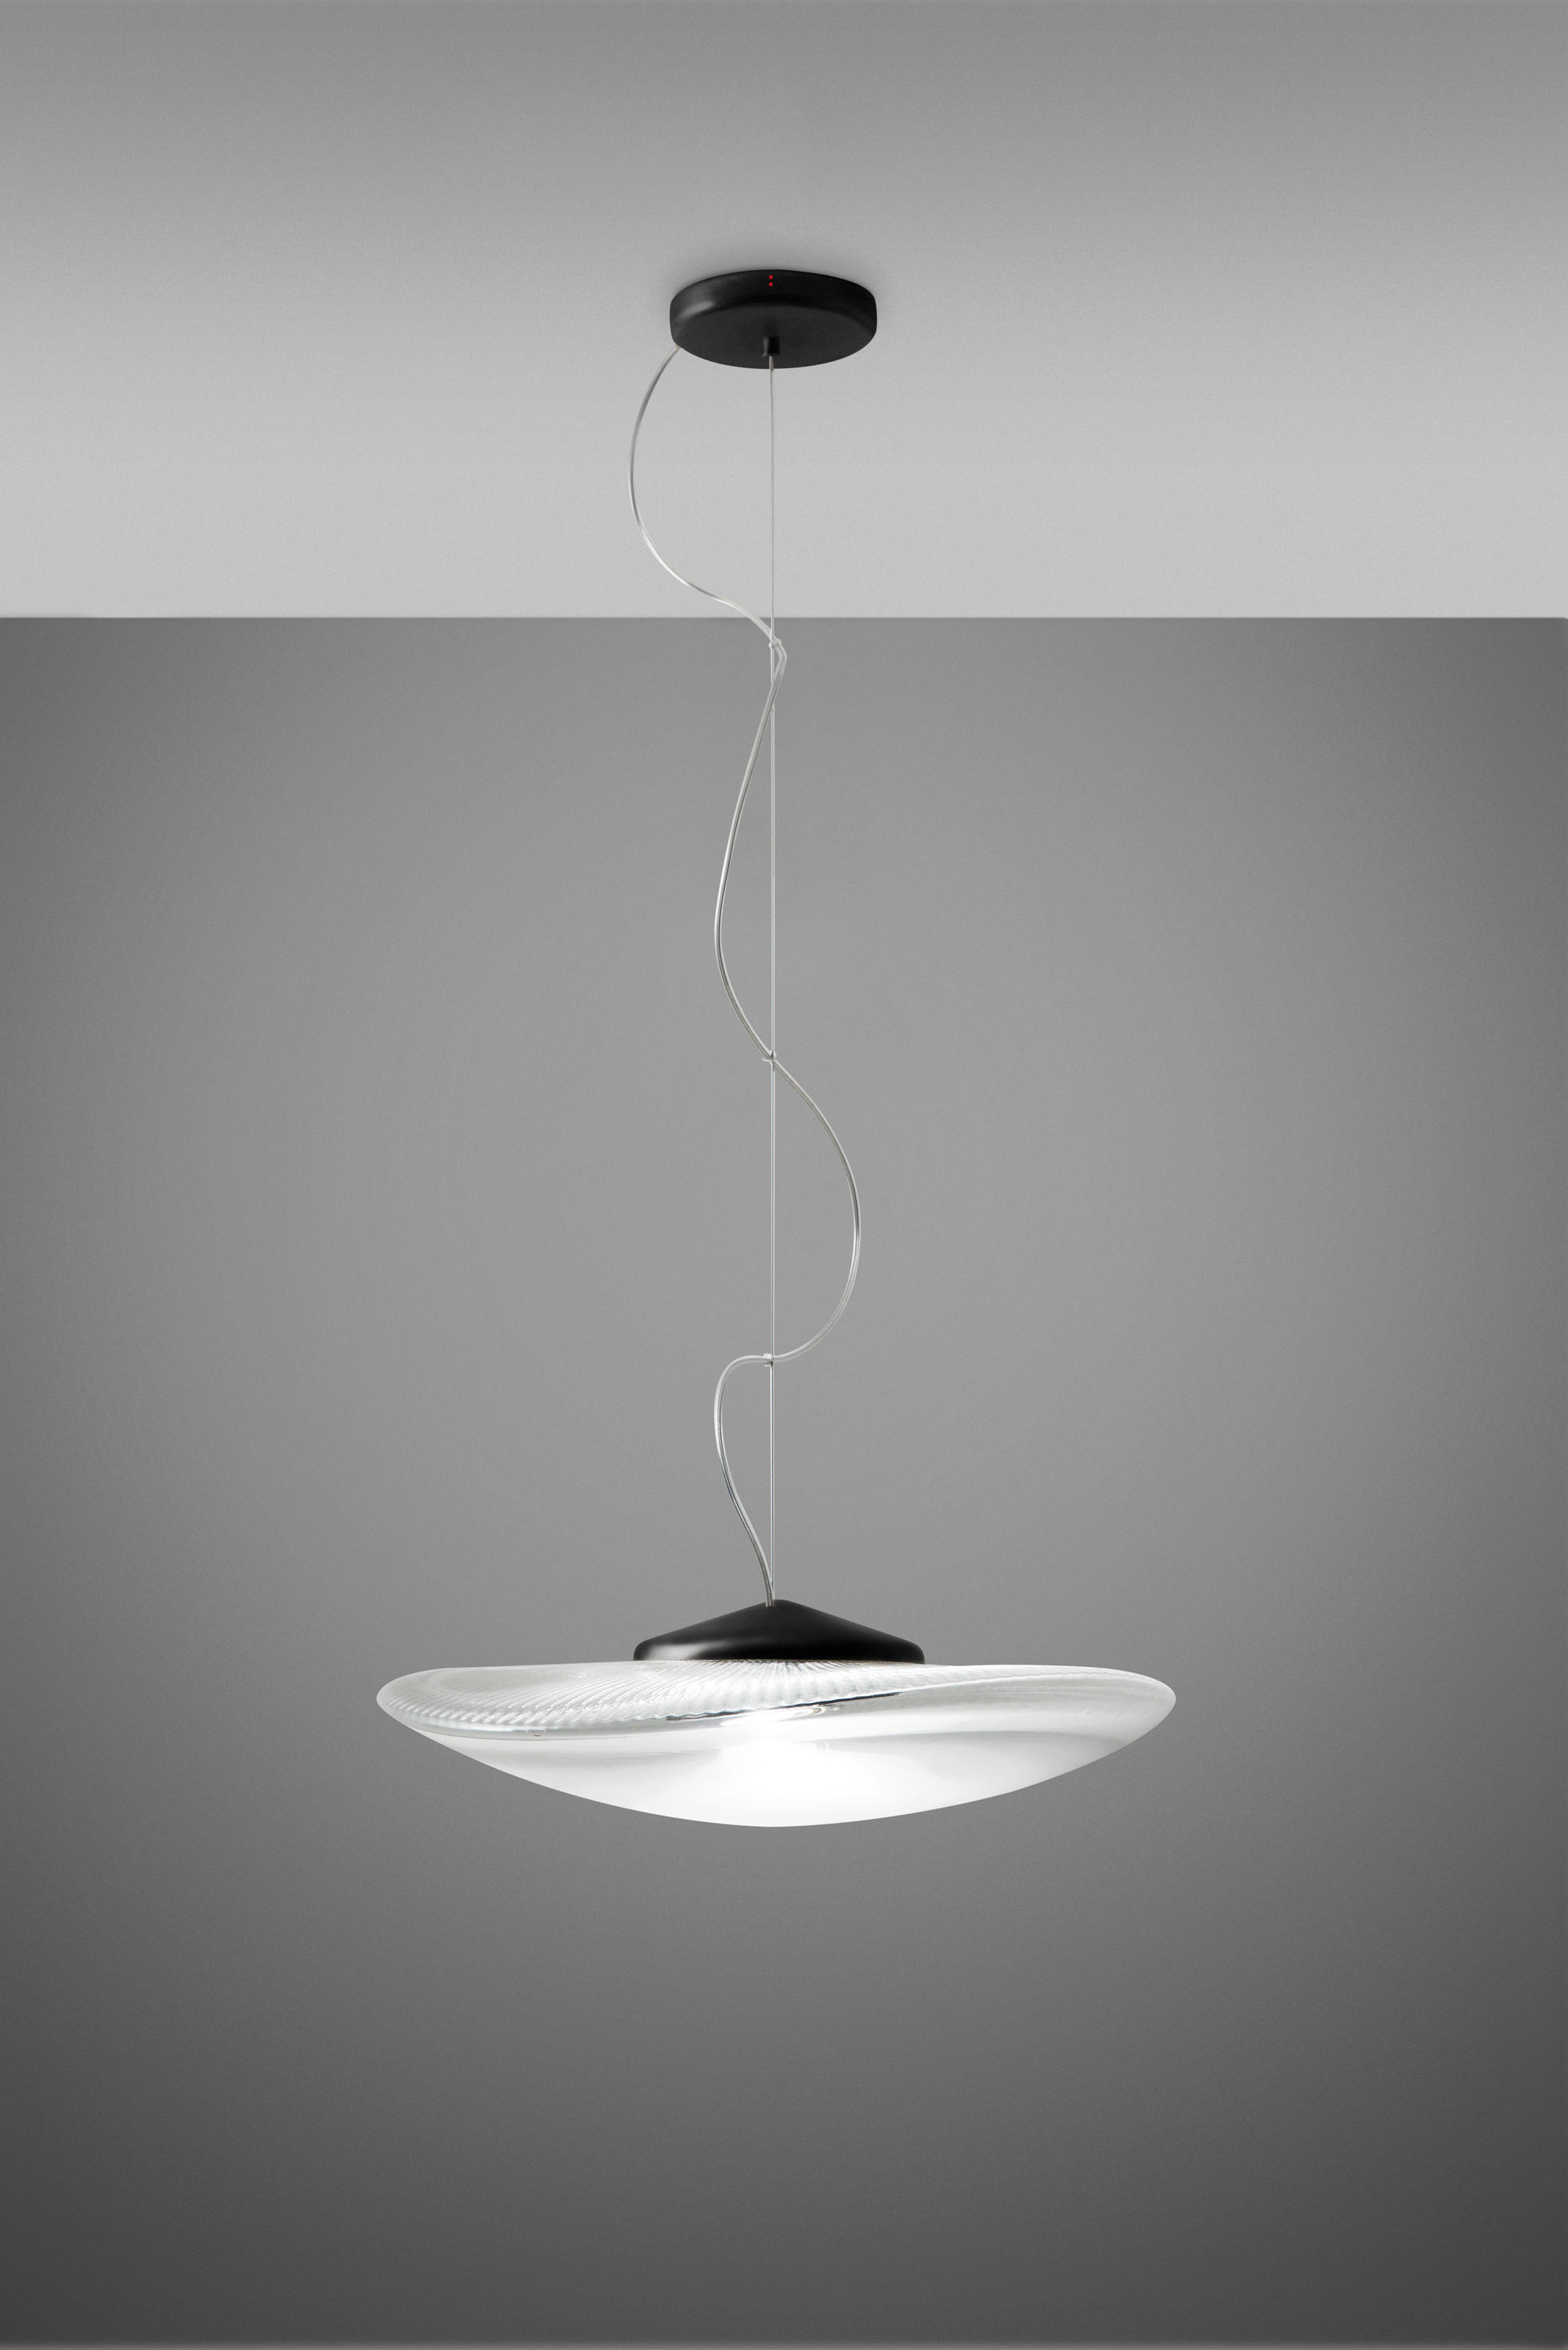 LOOP F35 A01 00 - General lighting from Fabbian | Architonic